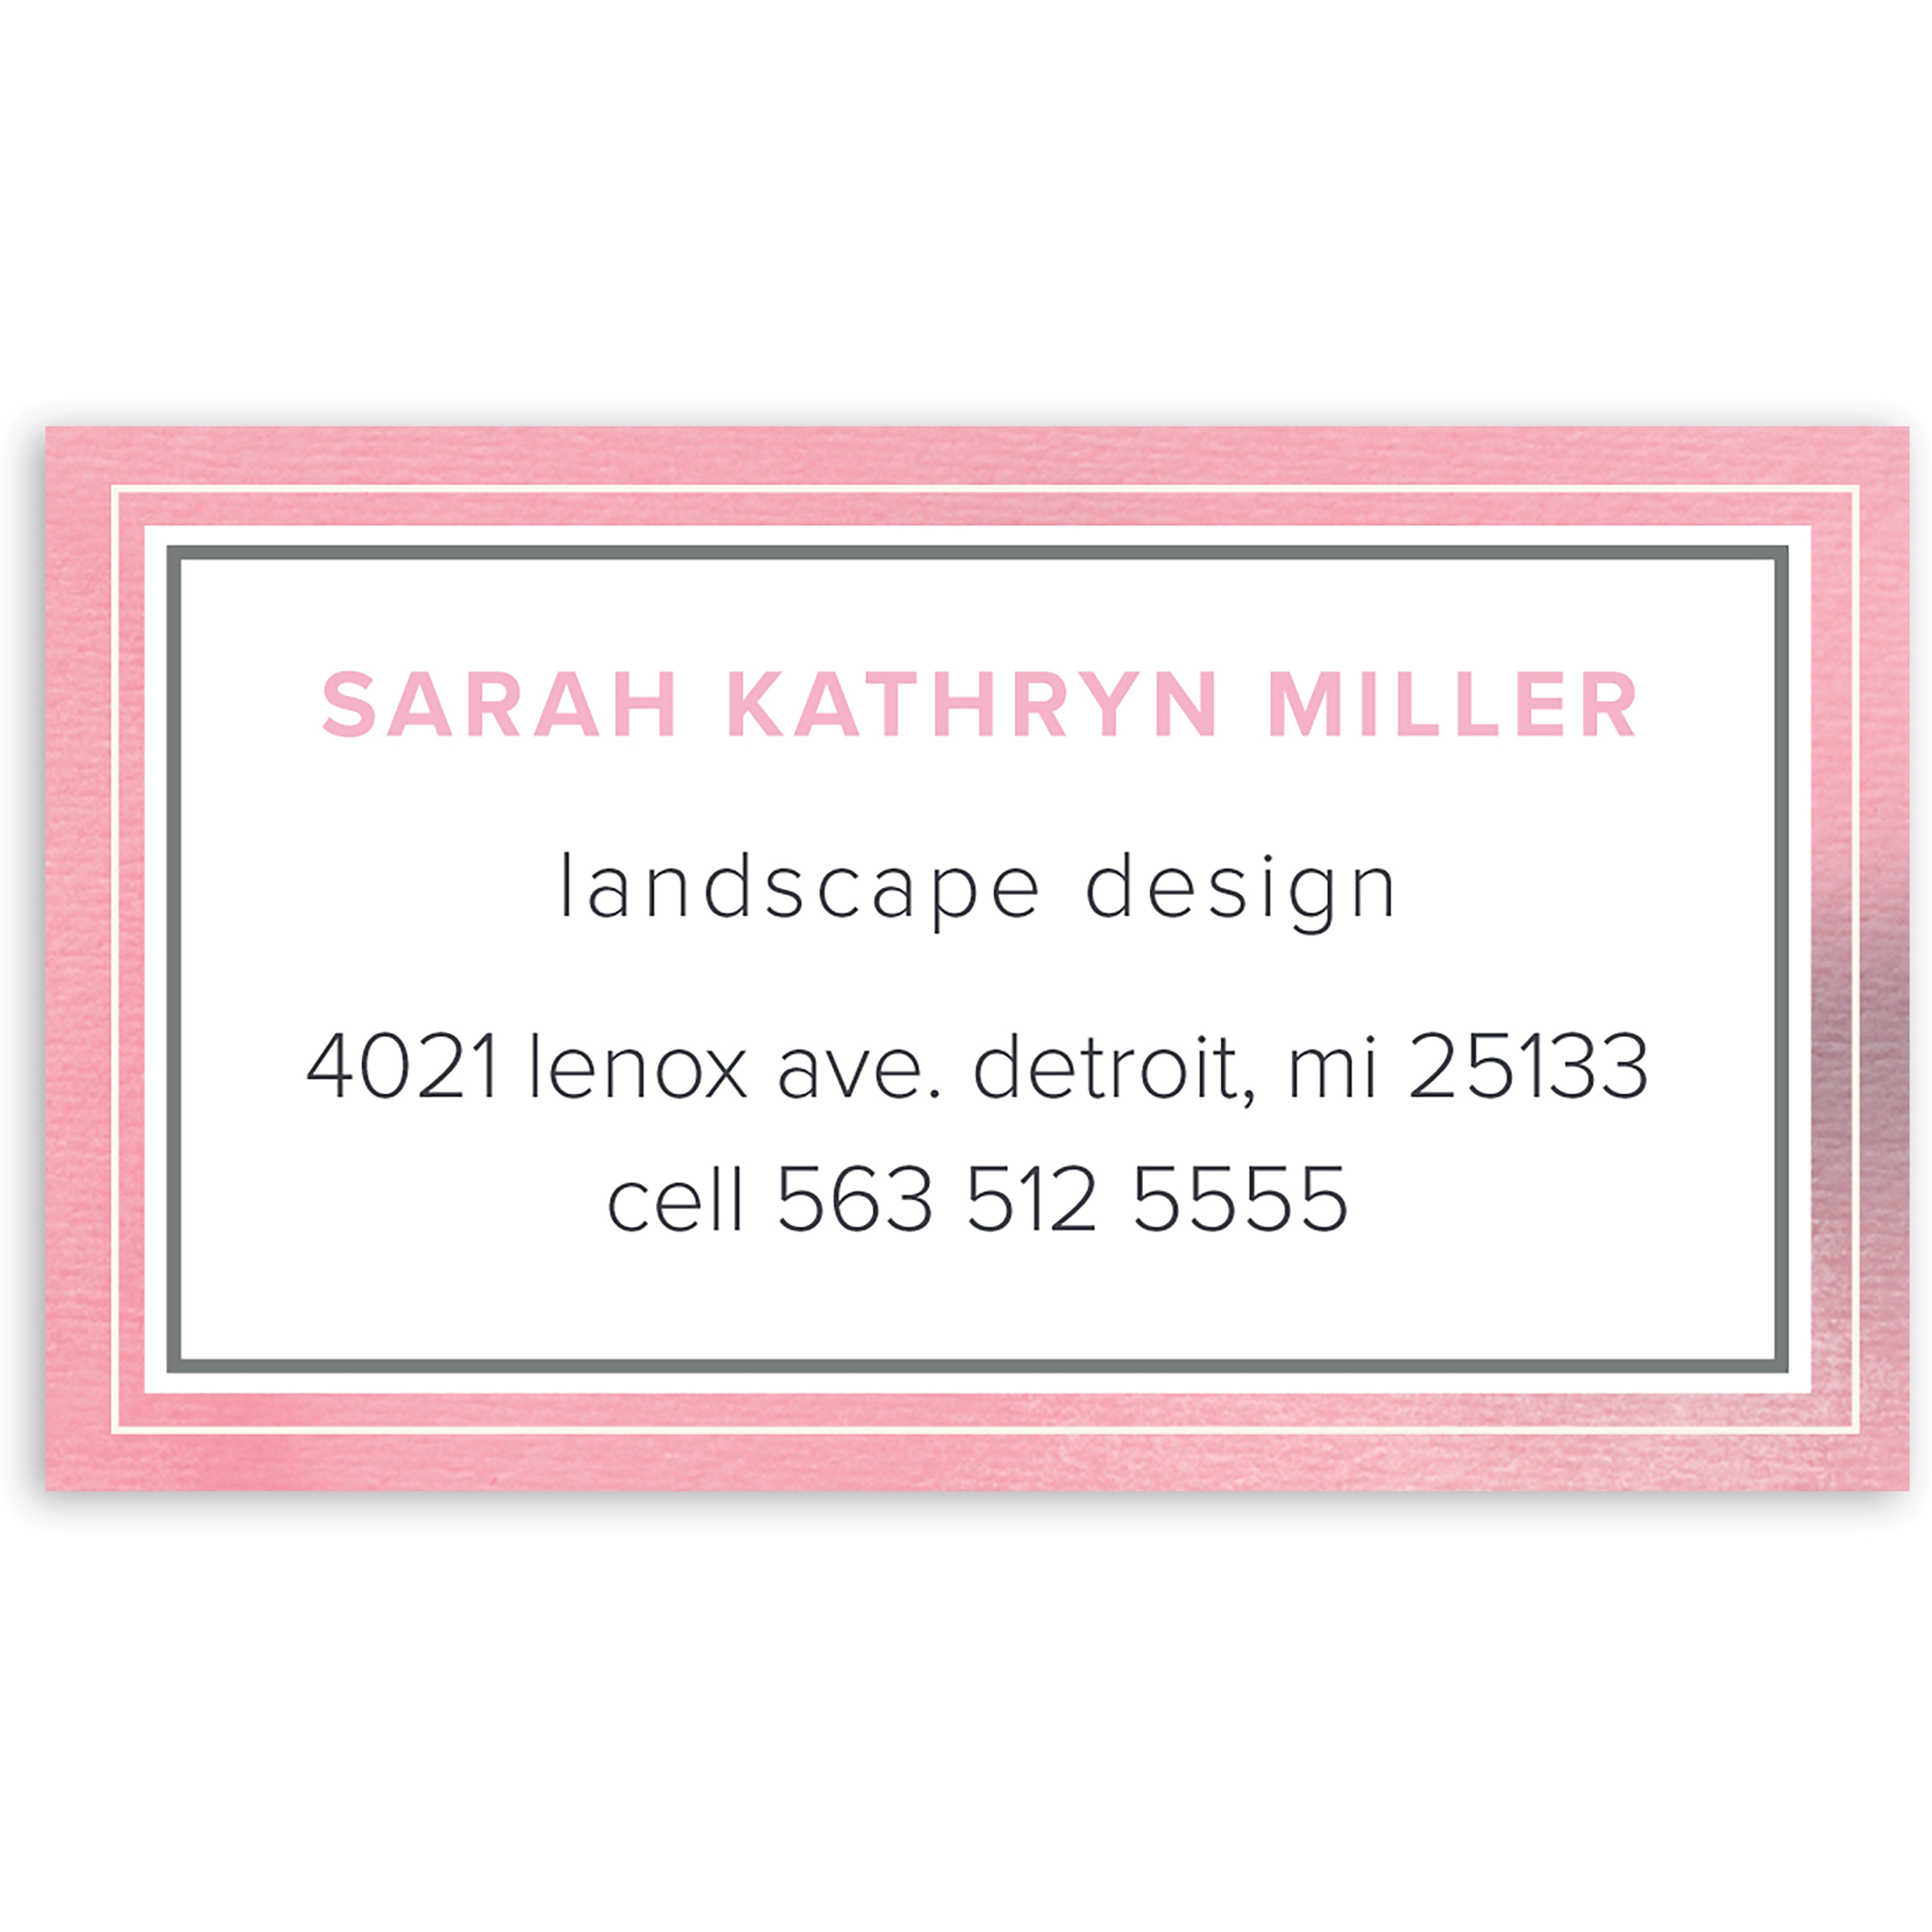 Graceful Script - Personalized 3.5 x 2 Business Card